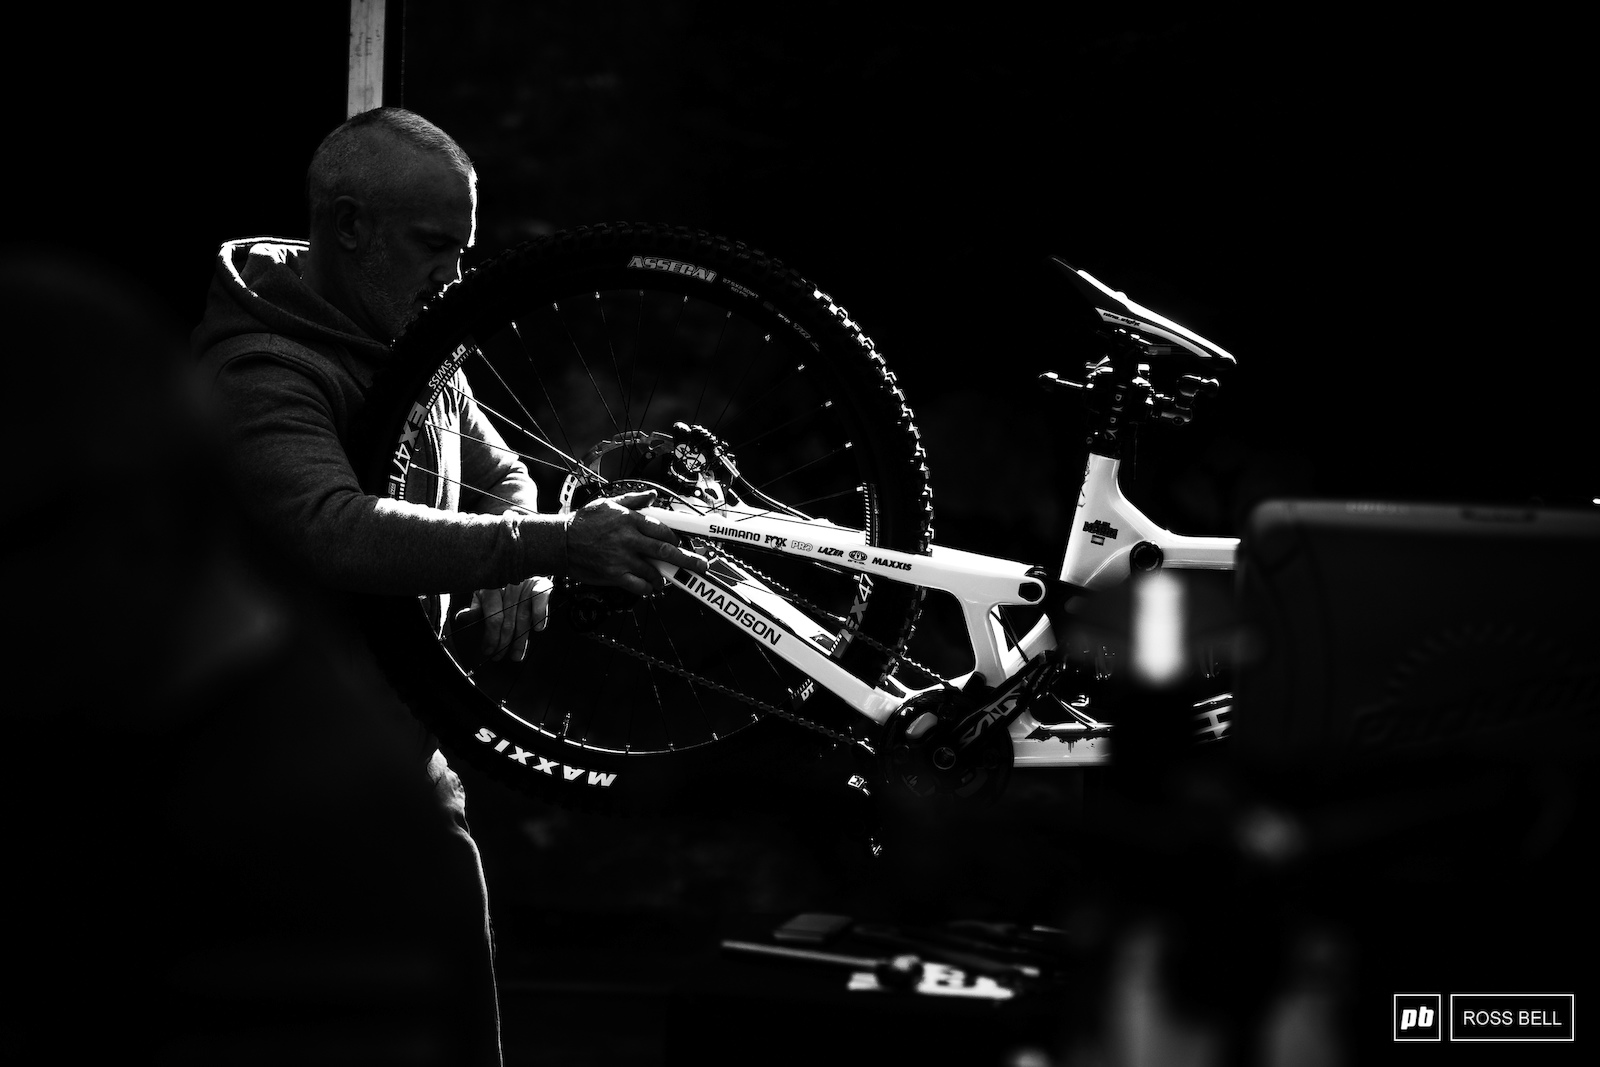 Mechanics had a busy morning putting the last touches to their race machines.